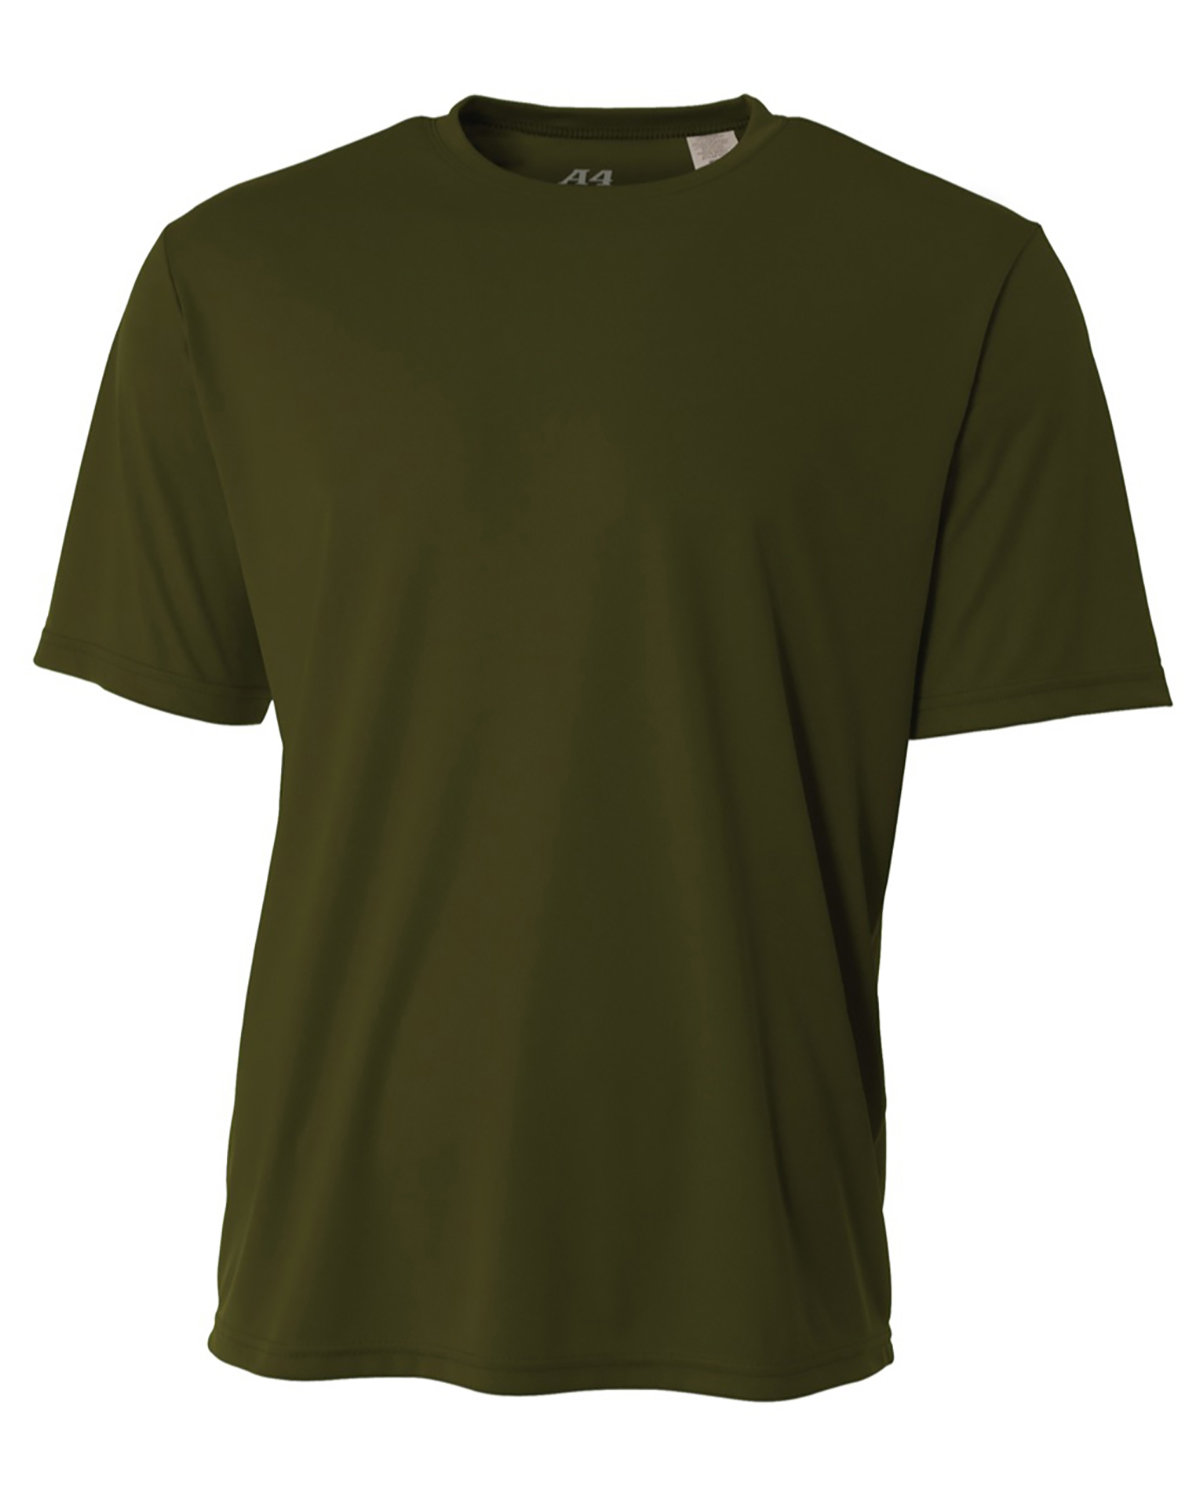 A4 Youth Cooling Performance T-Shirt MILITARY GREEN